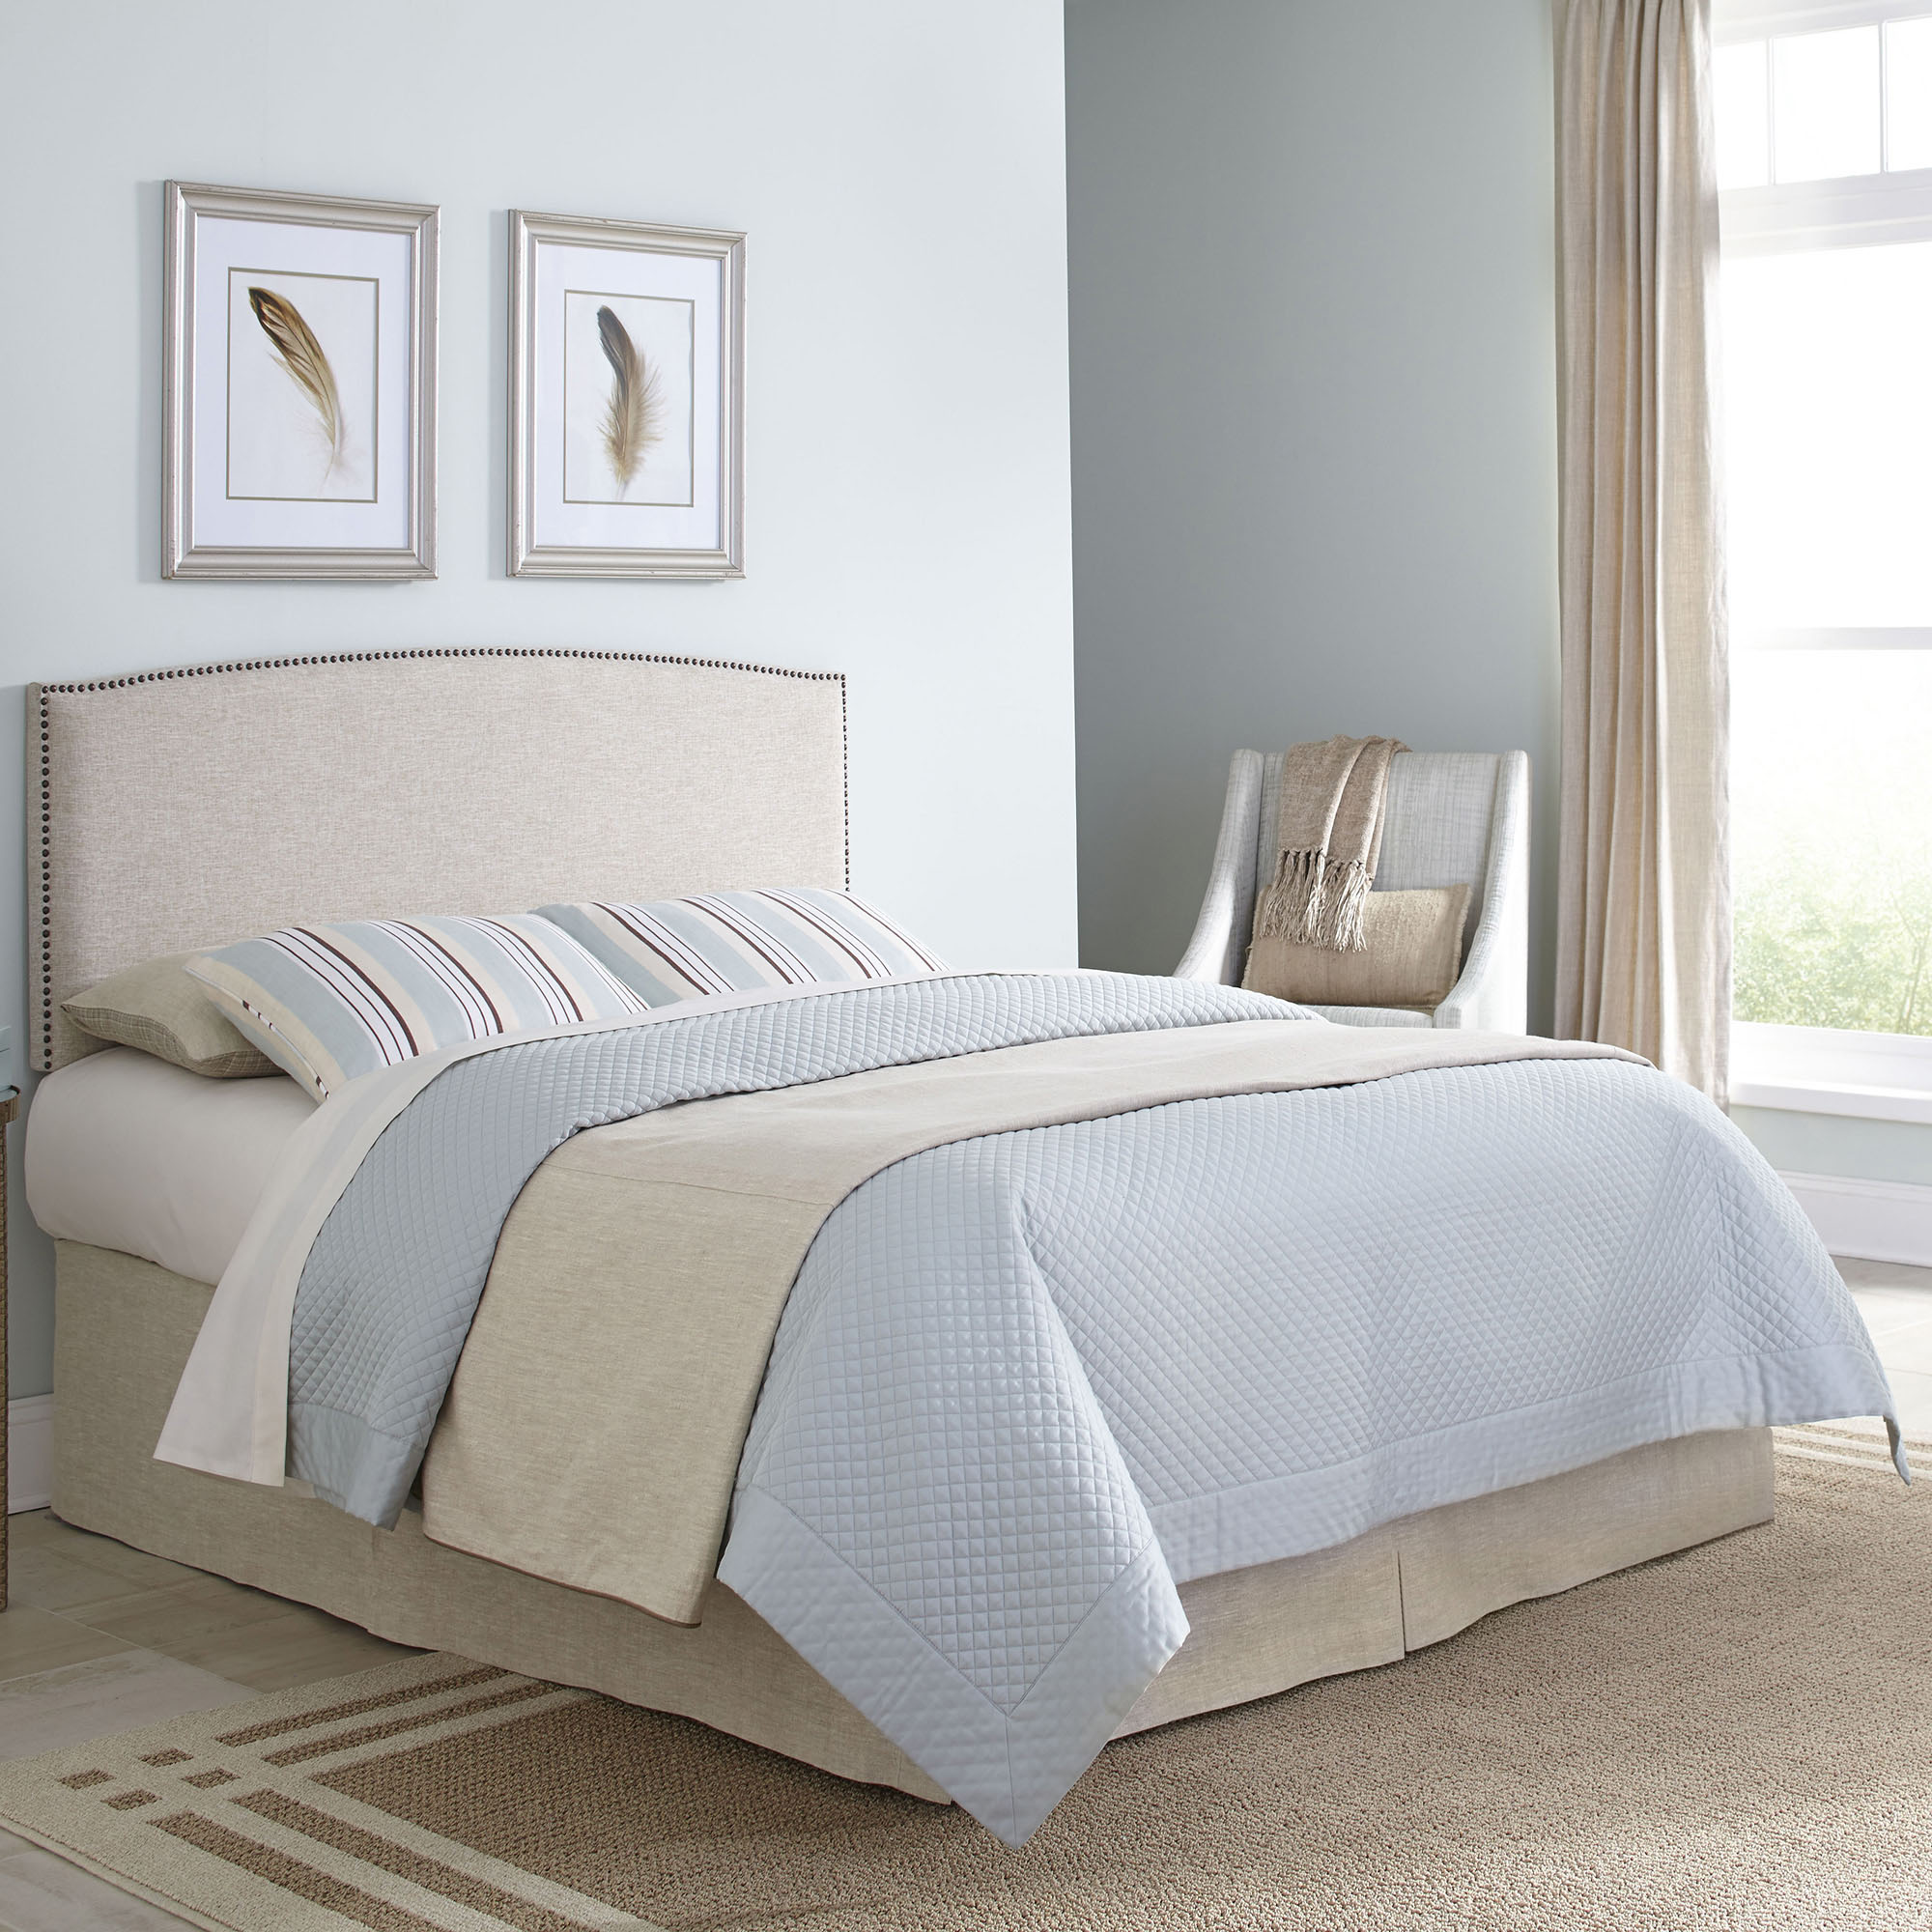 Princeton Upholstered Headboard with Adjustable Height and Nailhead Trim, Light Wheat Finish, Twin